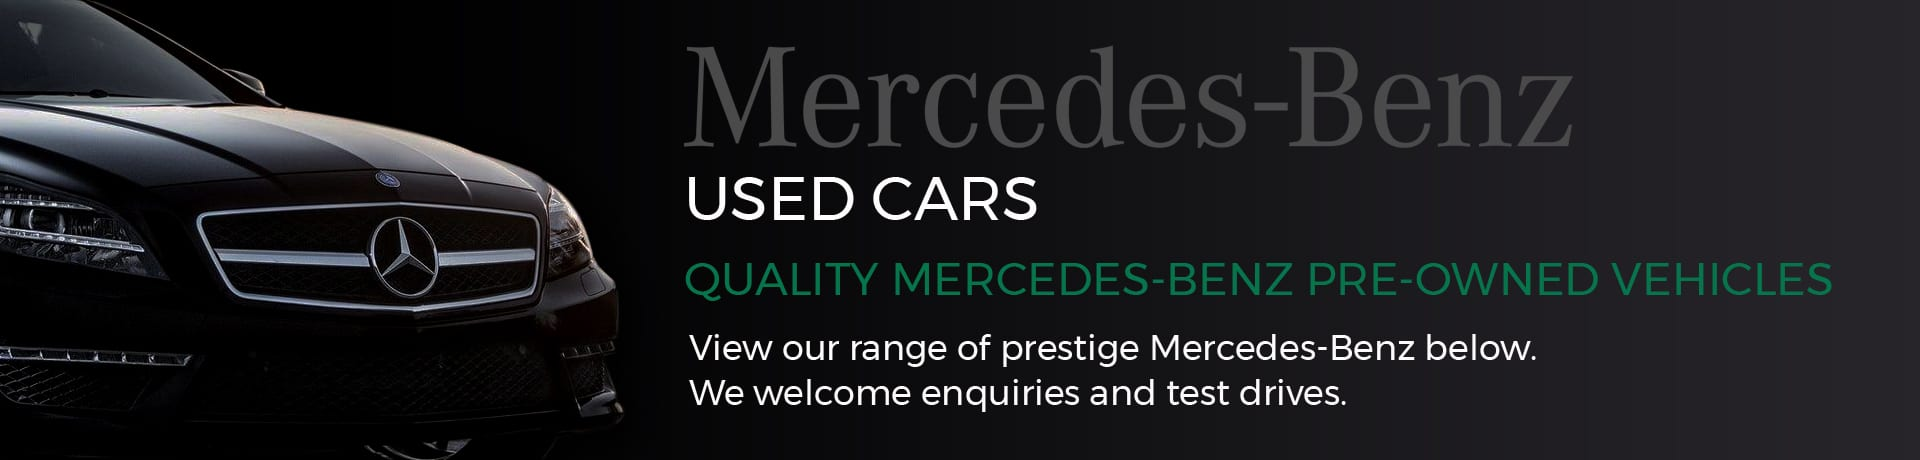 Mercedes-Benz used cars